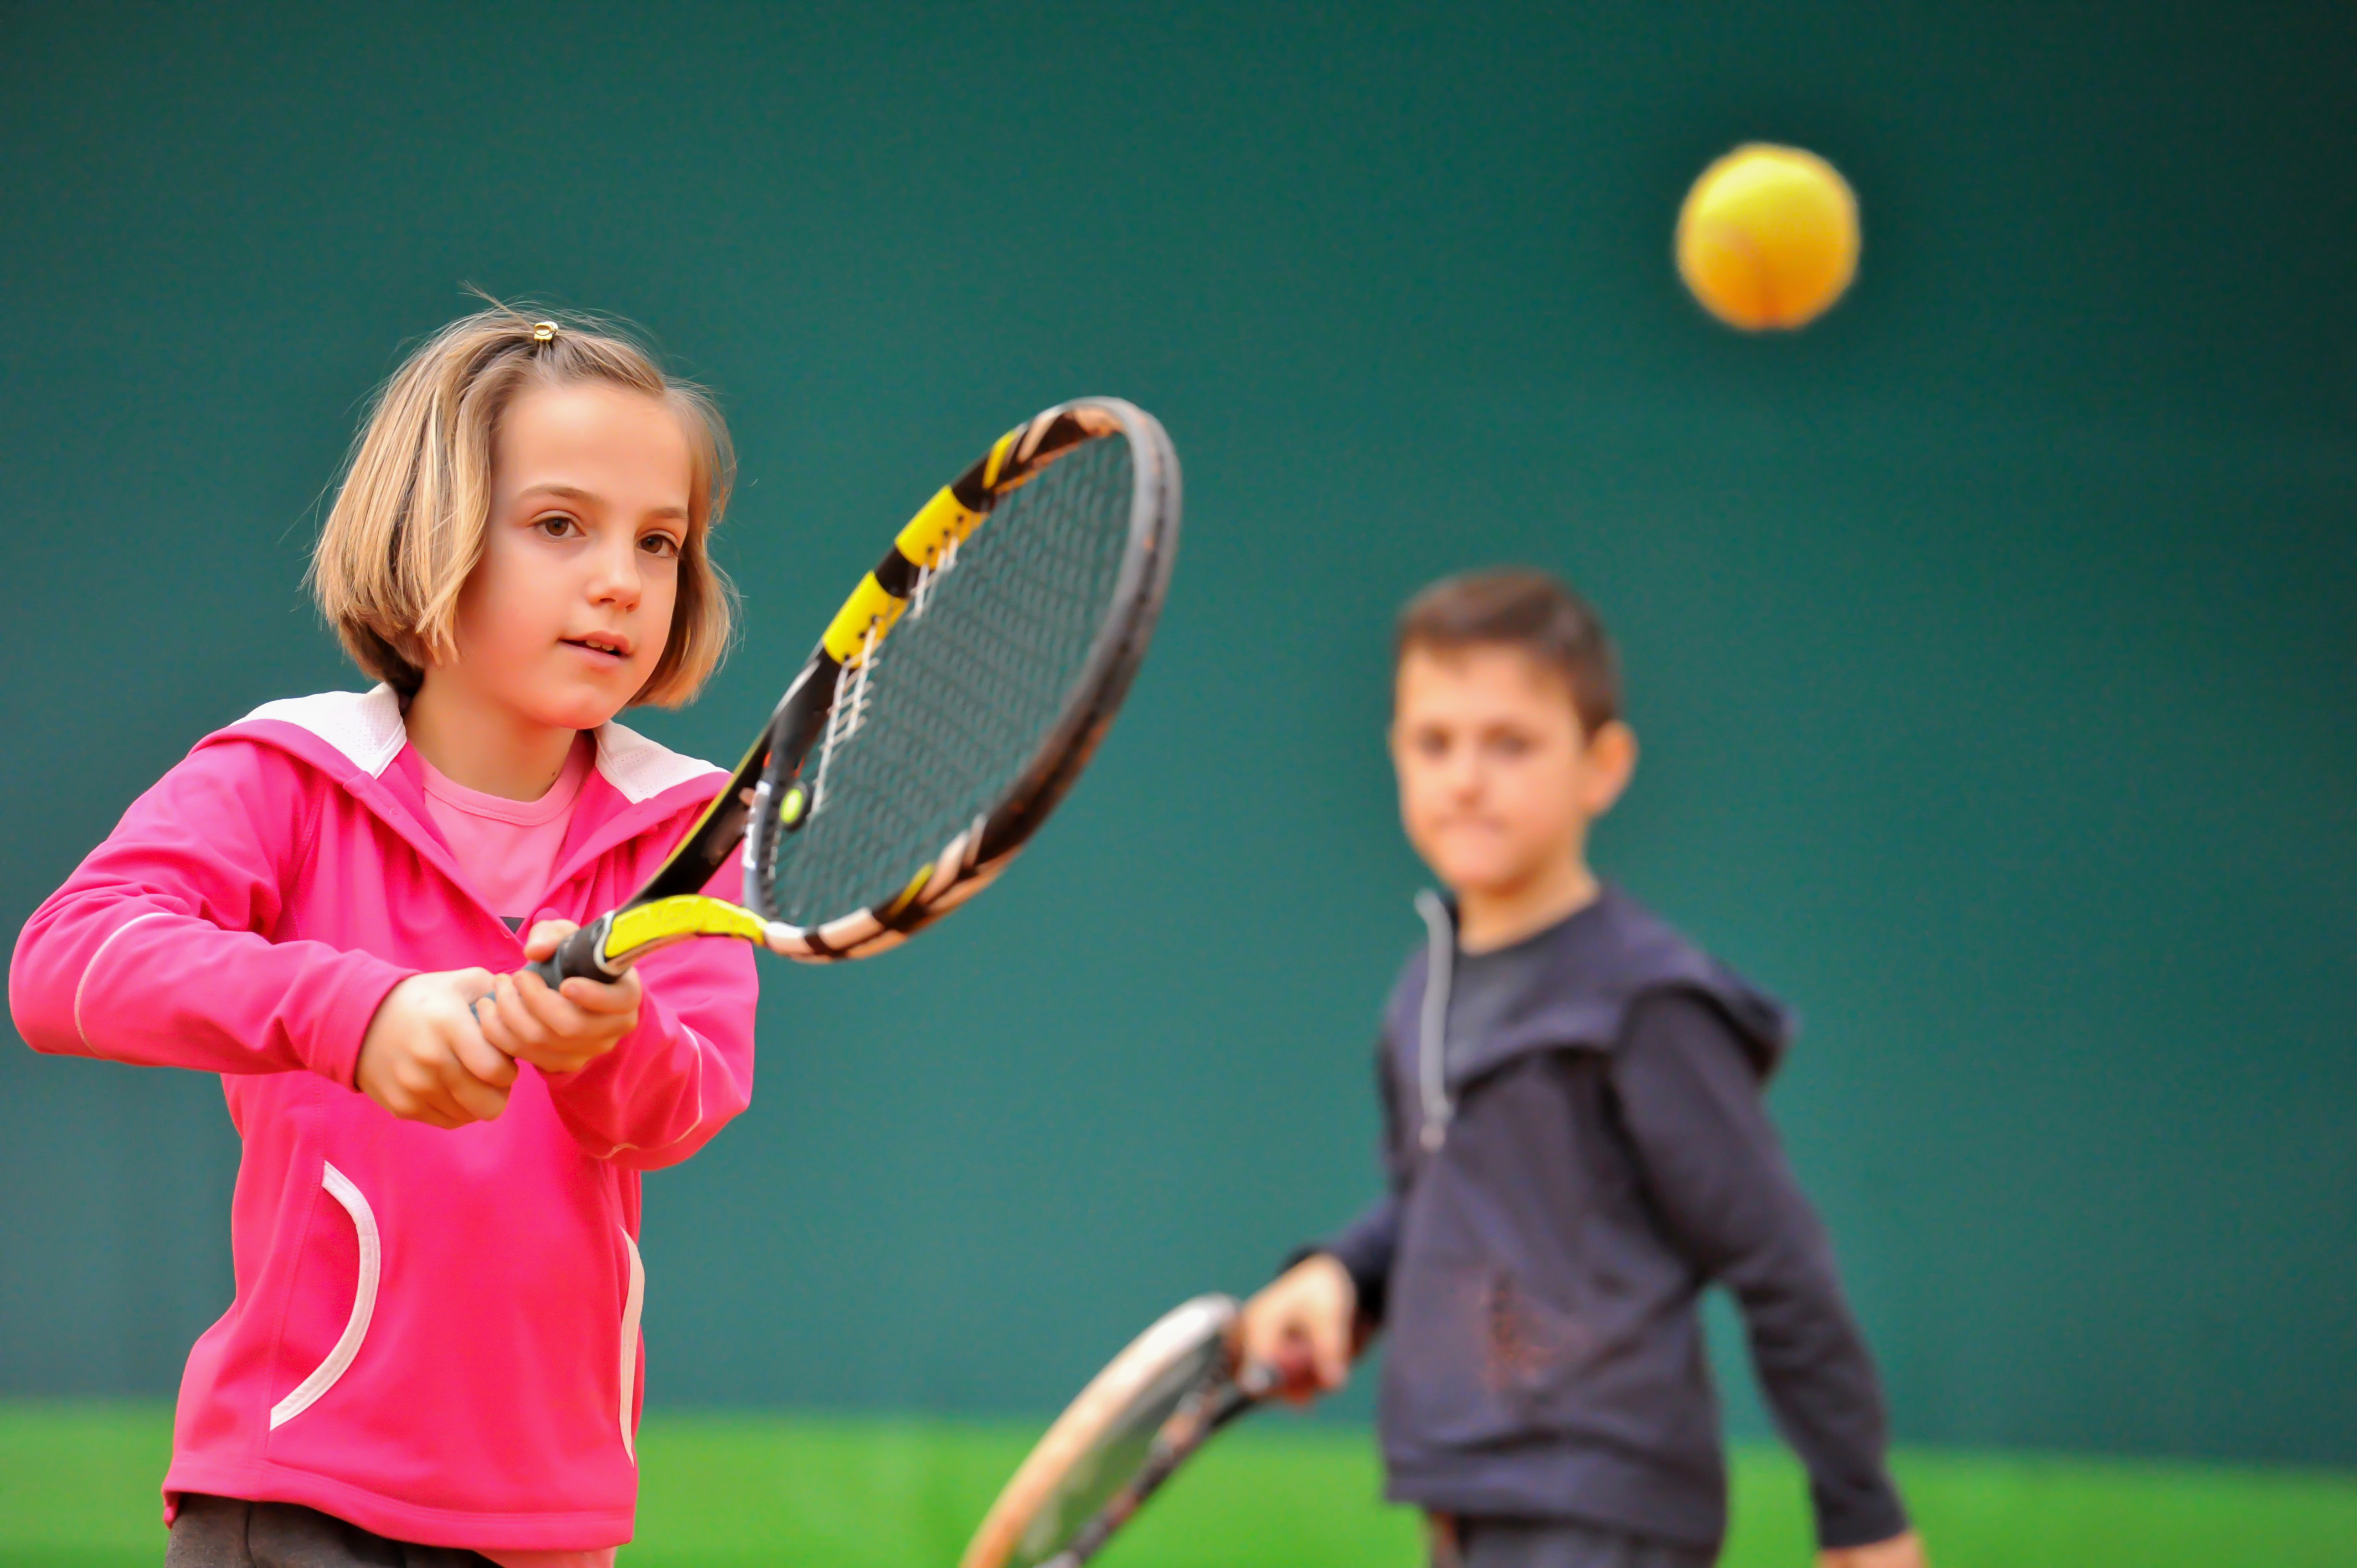 Kids Tennis Lessons - Ages 5 to 16